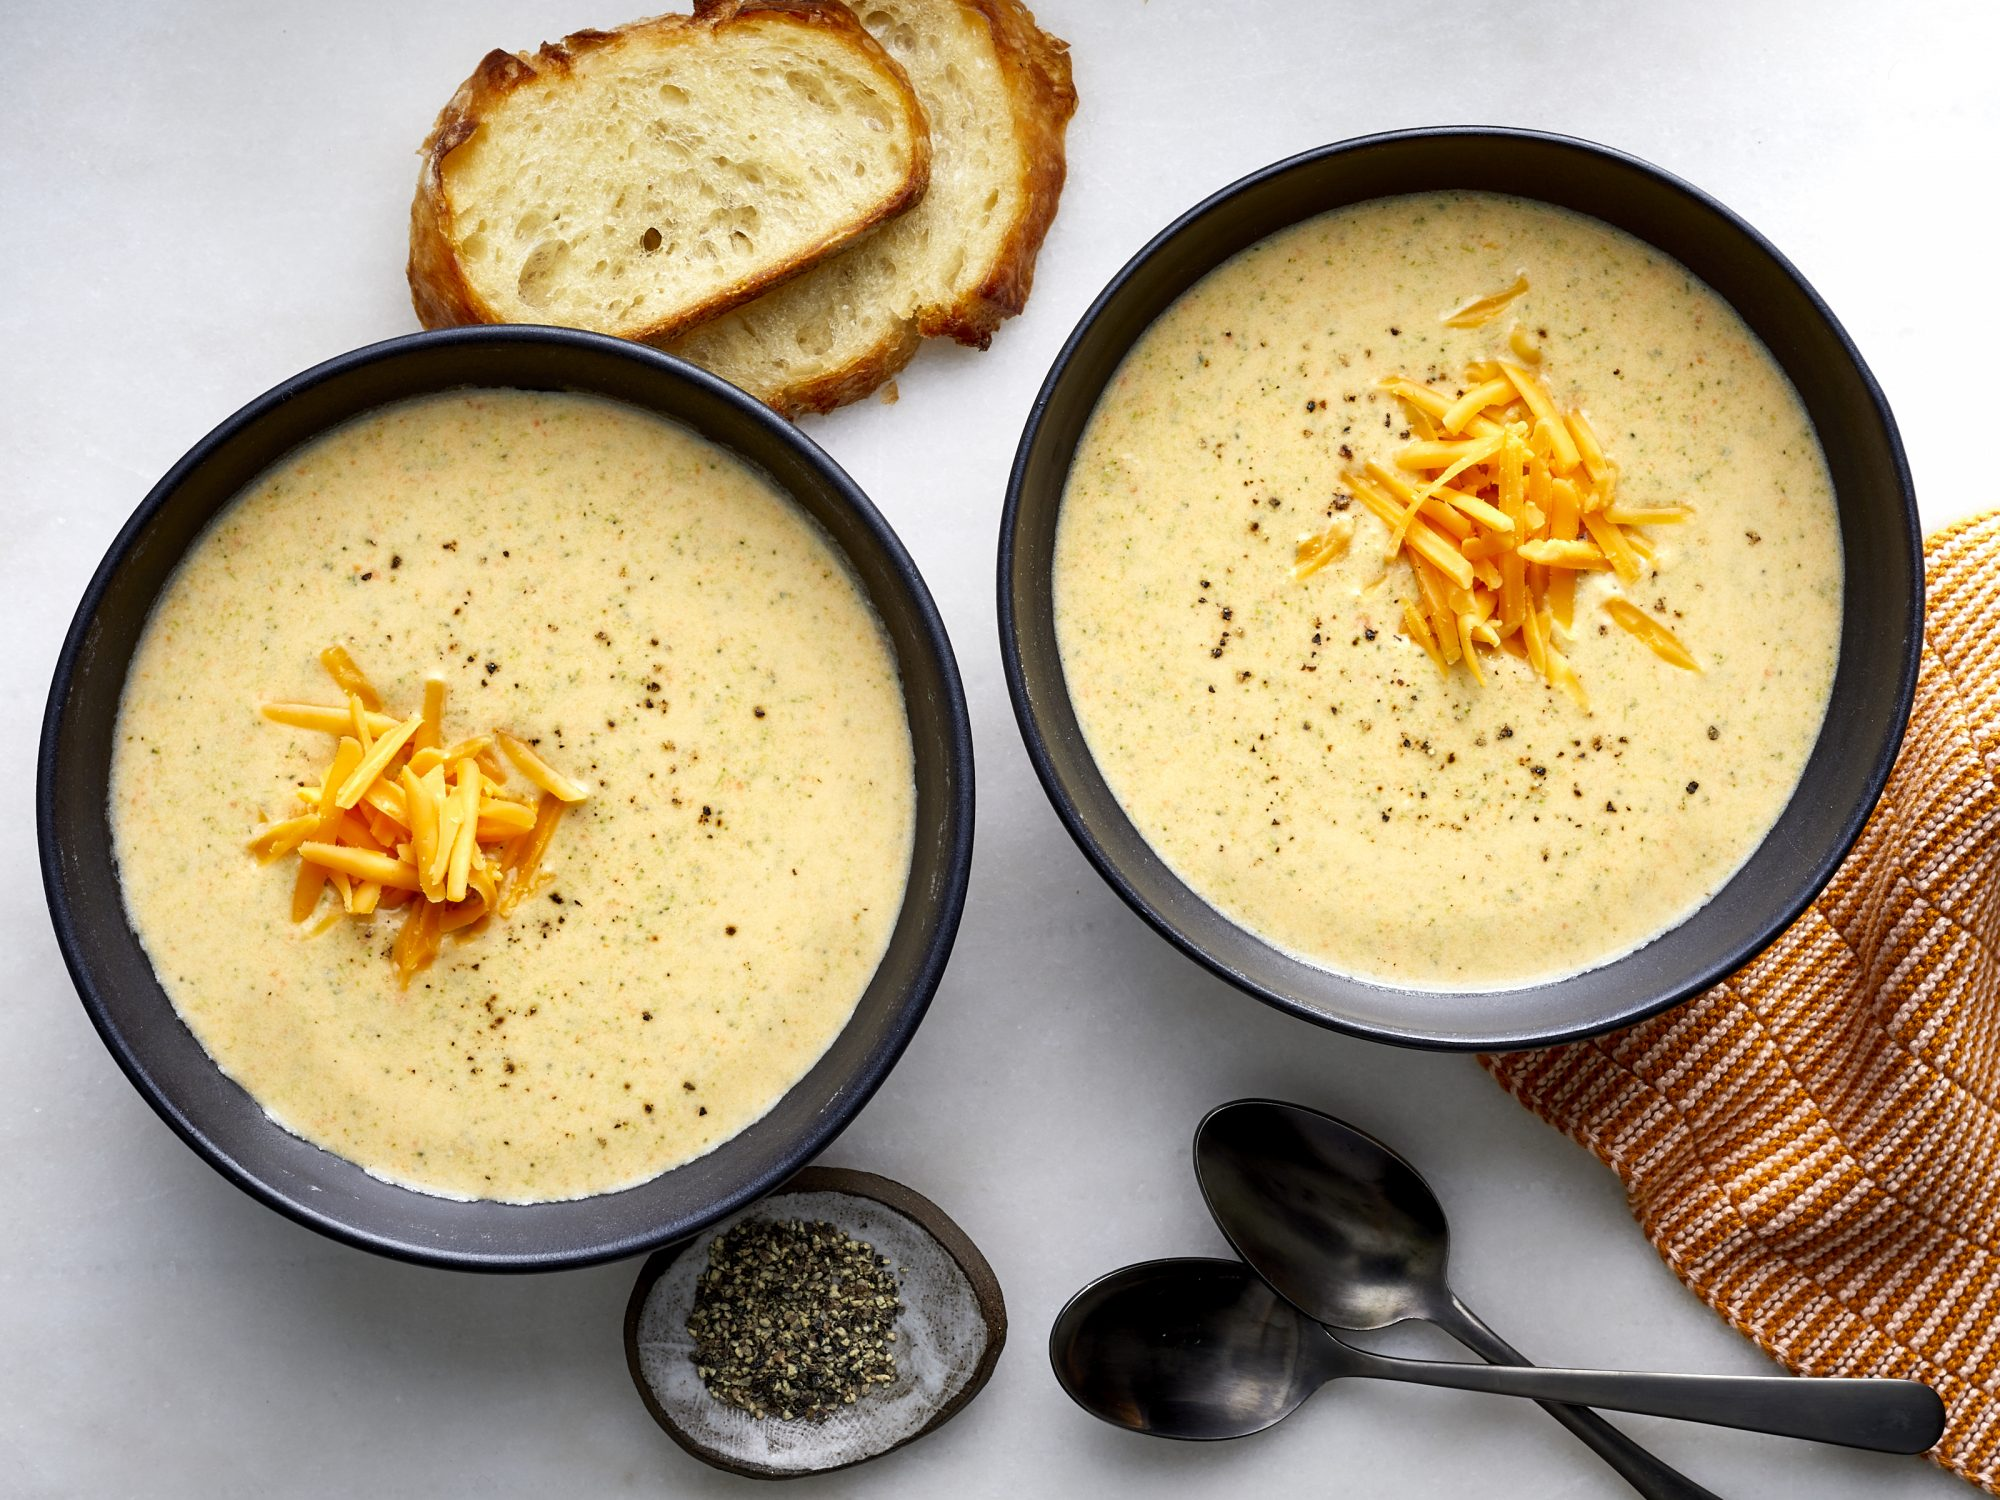 Broccoli-Cheddar Soup Image